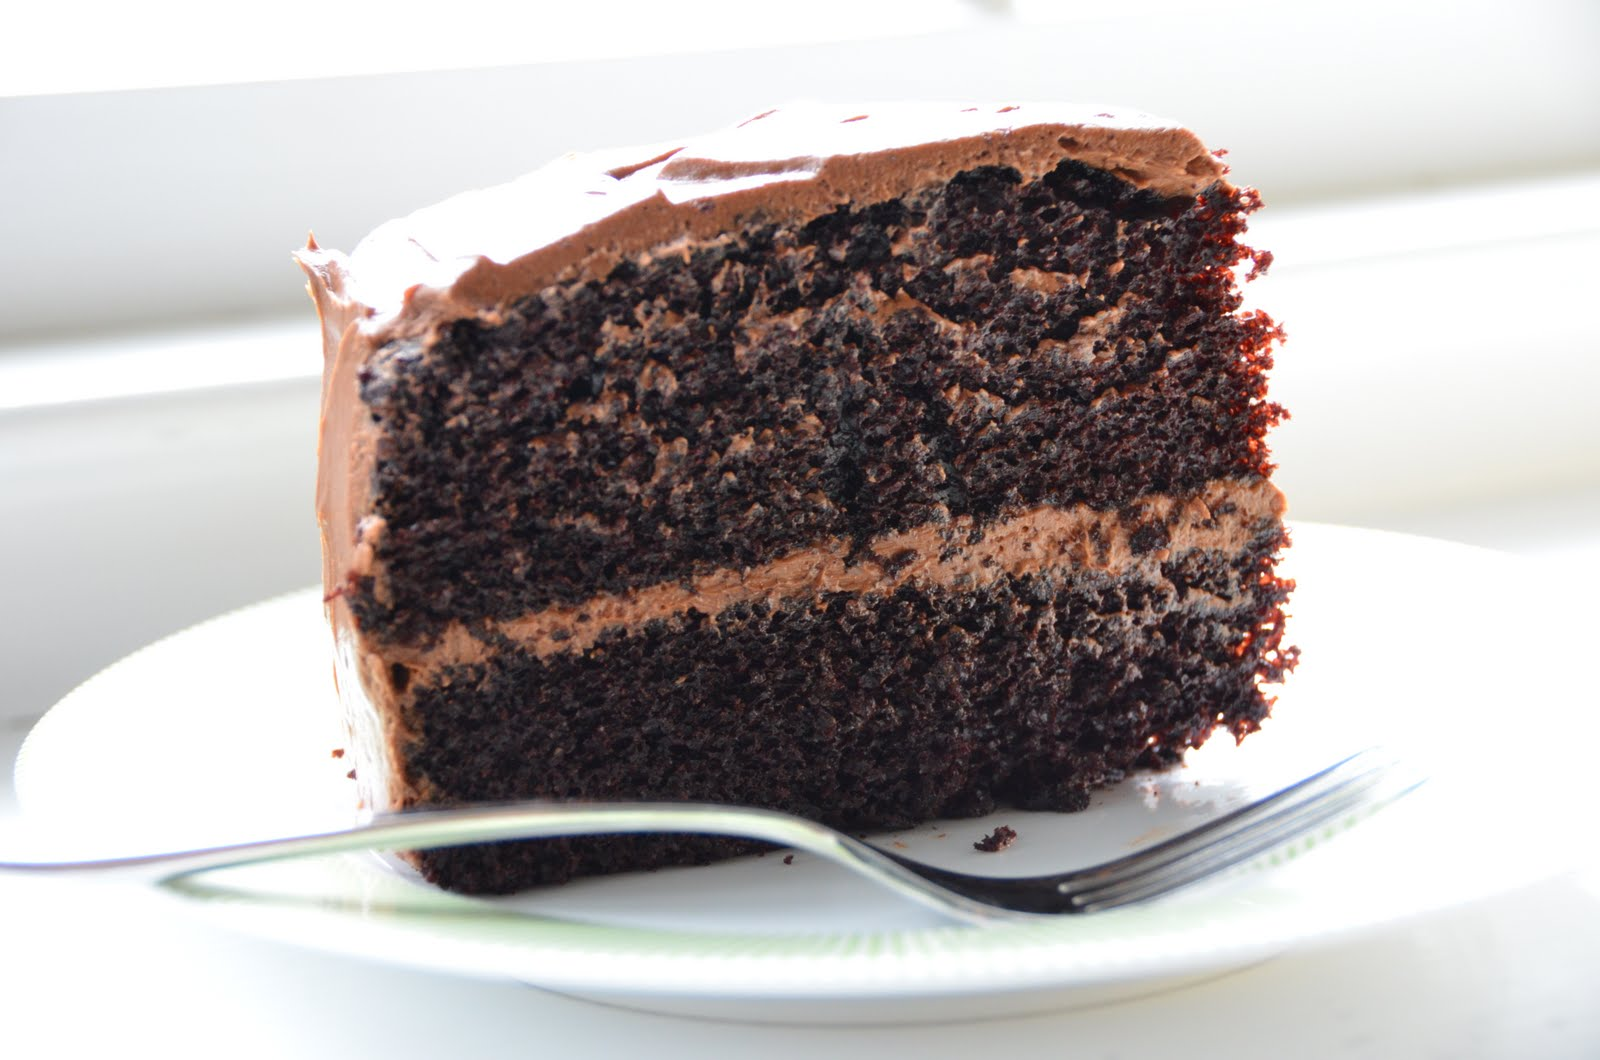 Mocha Chocolate Cake Allrecipes